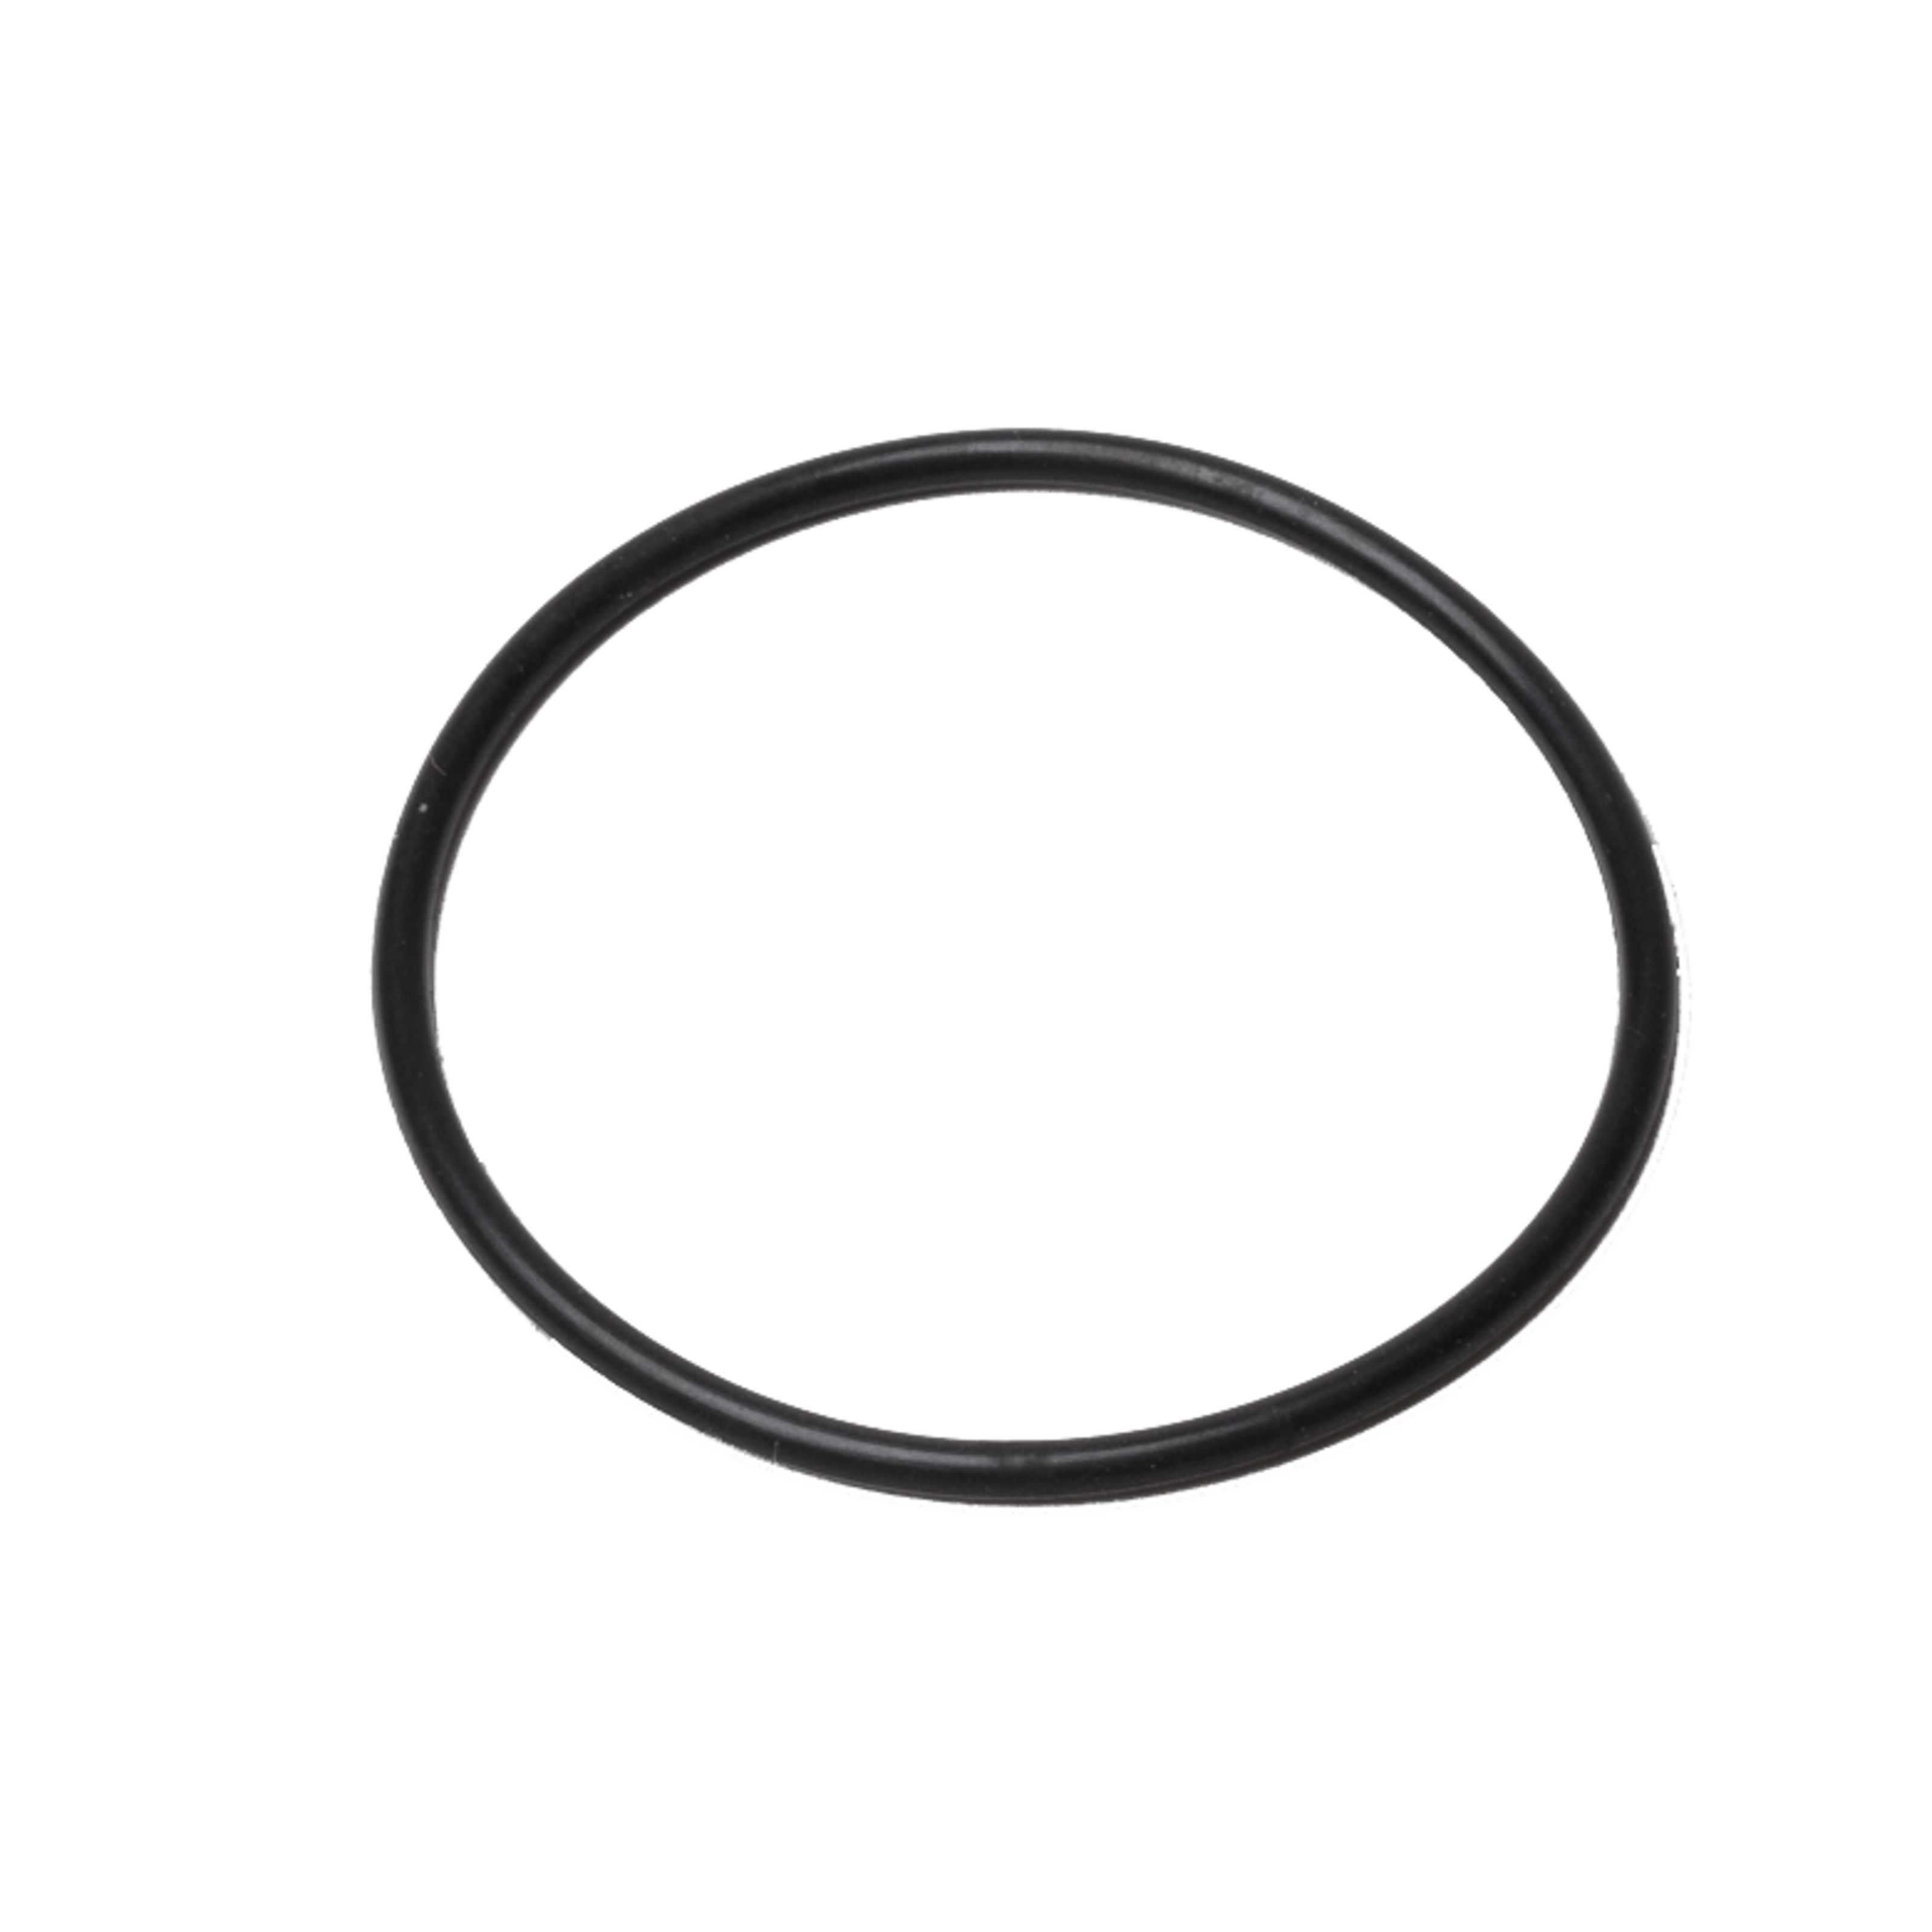 The Snap - O-Ring black Overstock 25 pcs 25er O-Ring mit